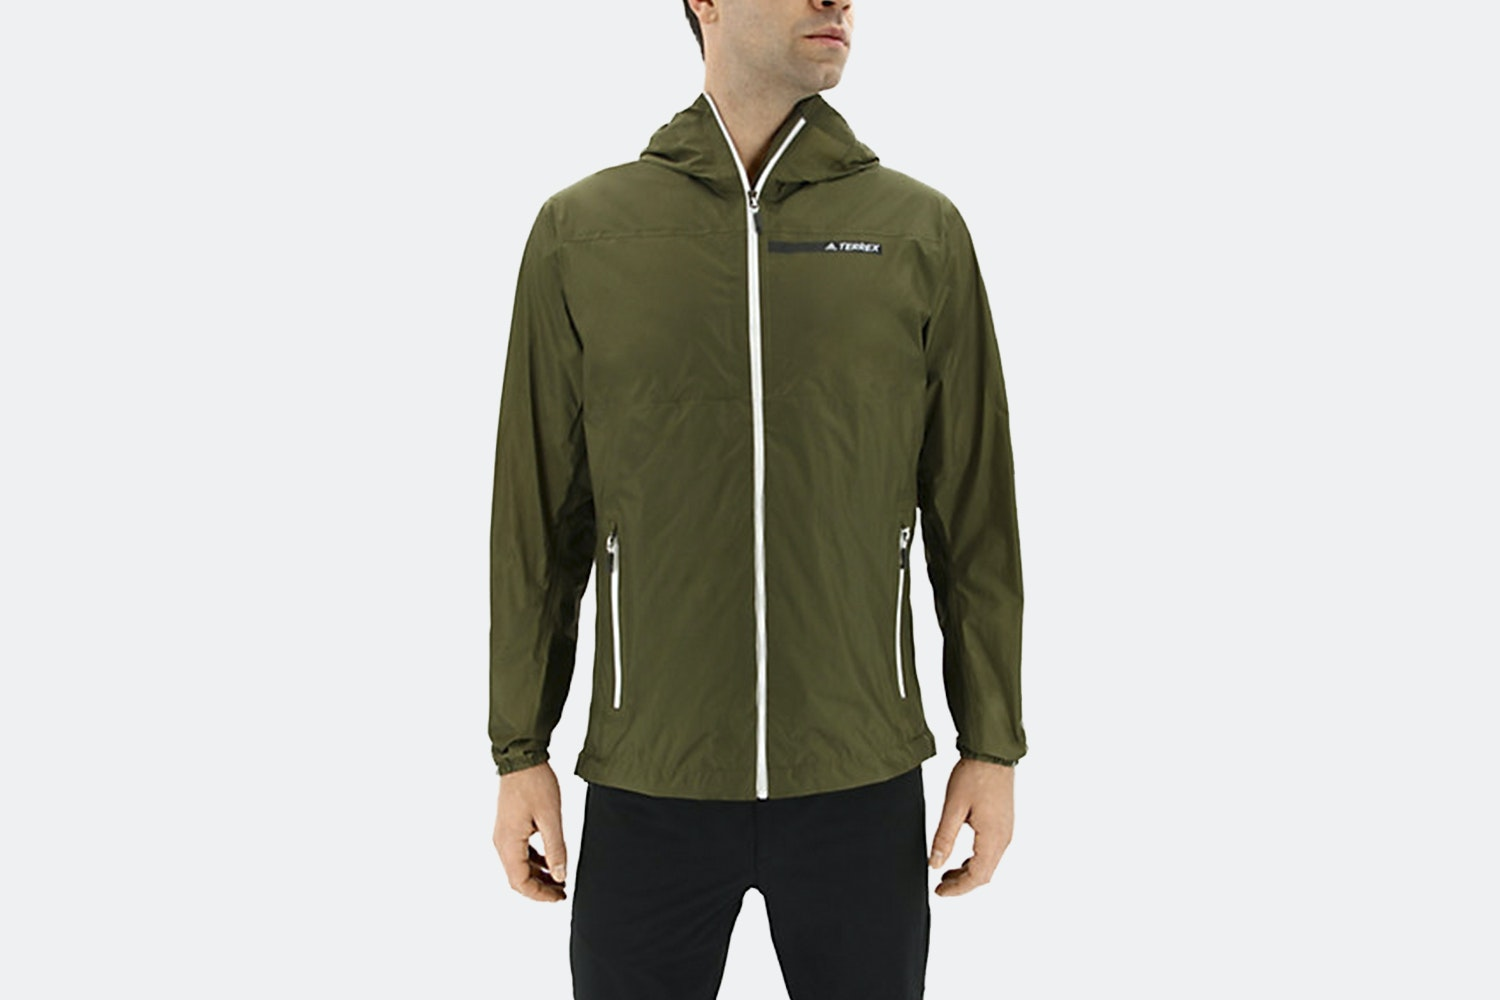 Men's – trace olive